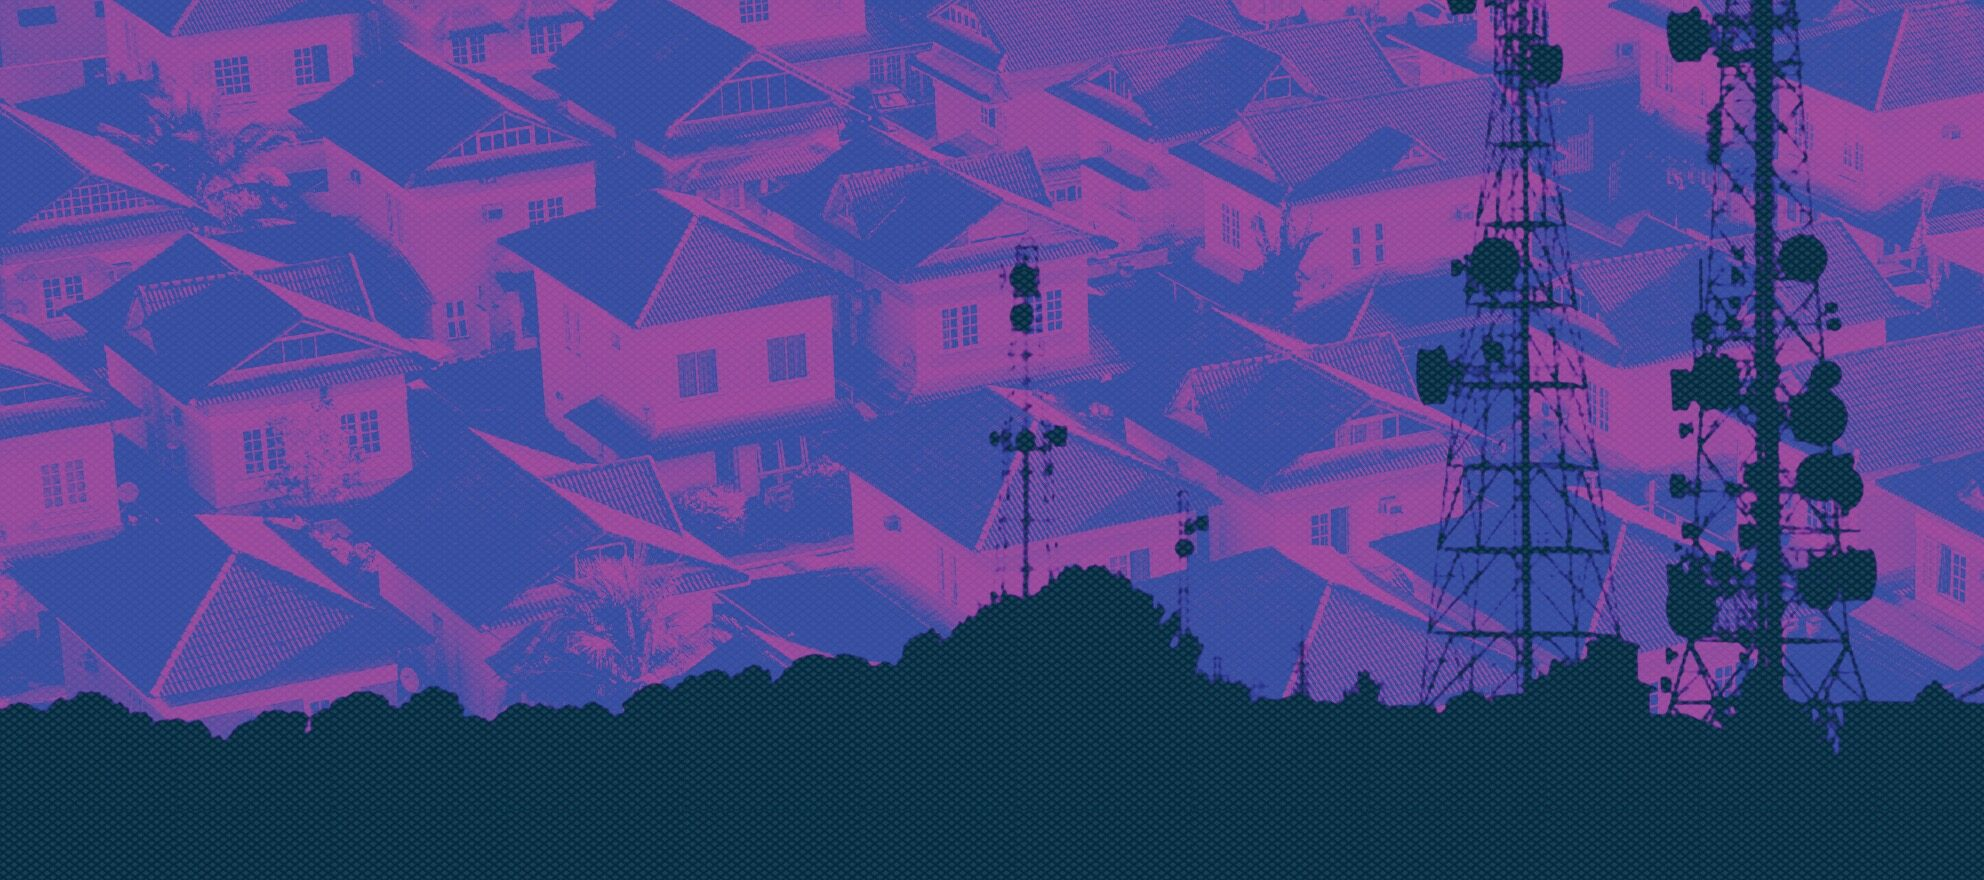 3 ways 5G will (eventually) change real estate, data and your home